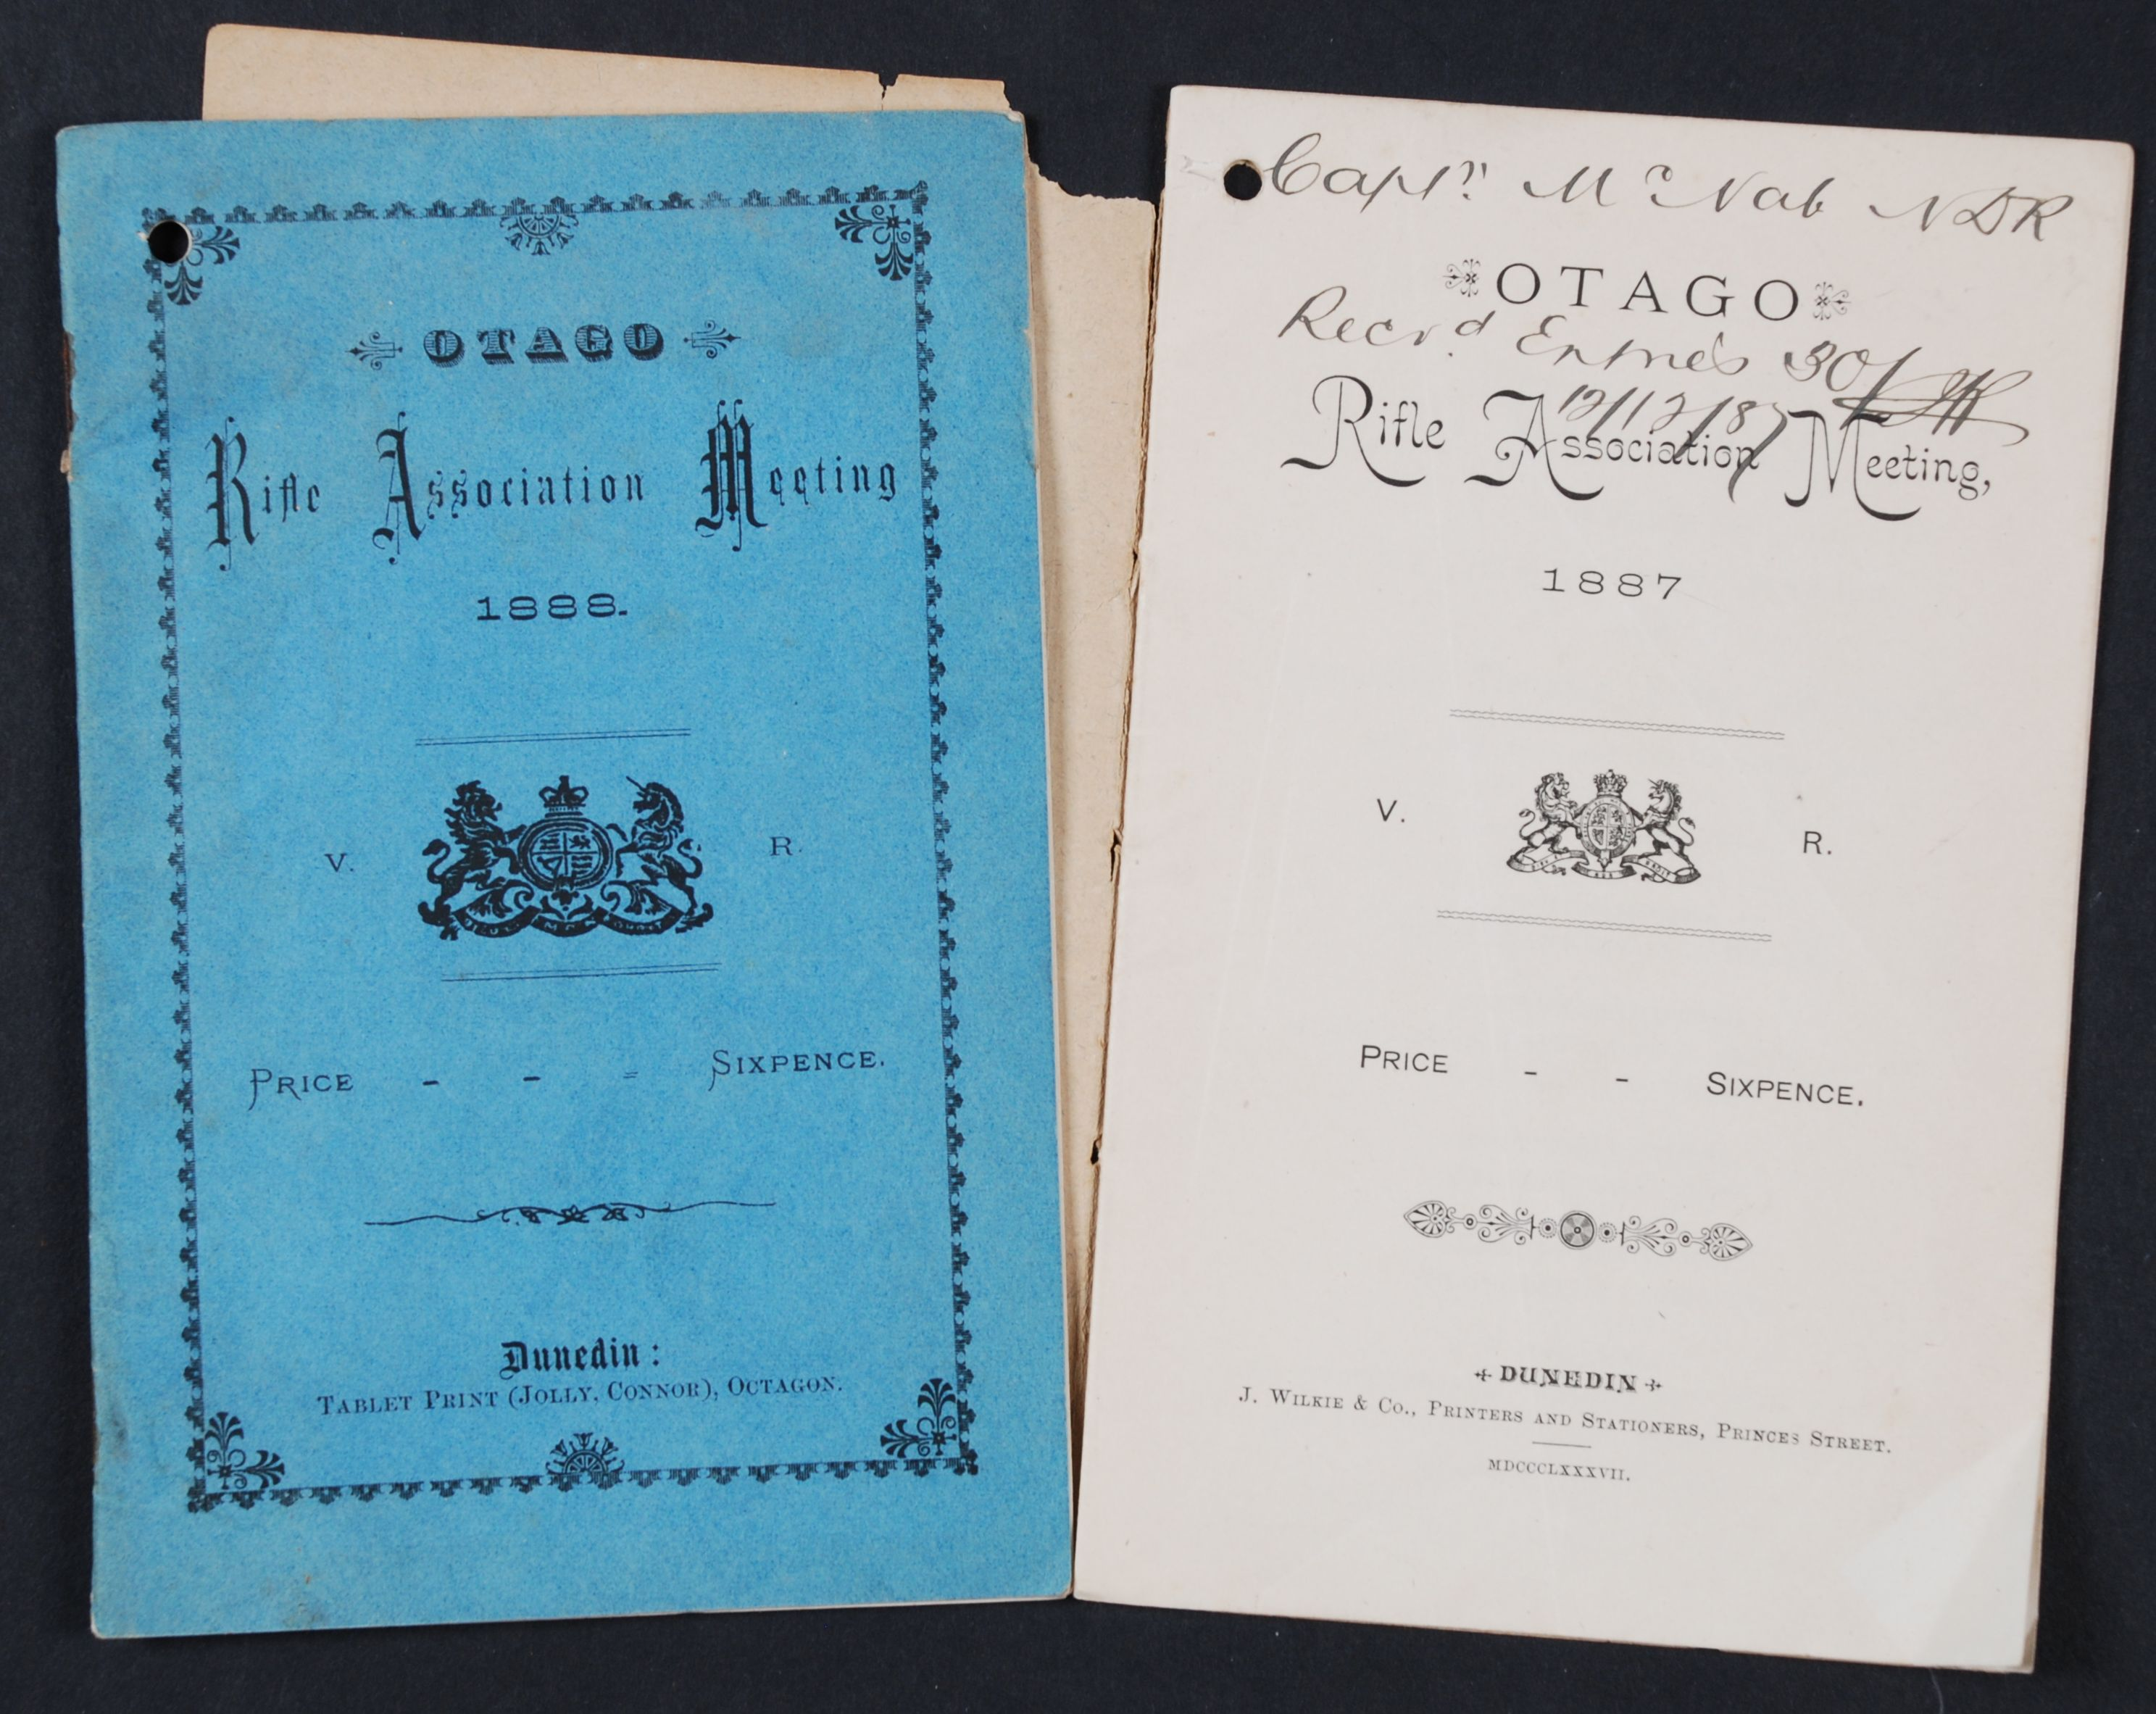 Otago Rifle Association. Otago Rifle Association Meeting.  Dunedin: J. Wilkie & Co., 1887, 1888.